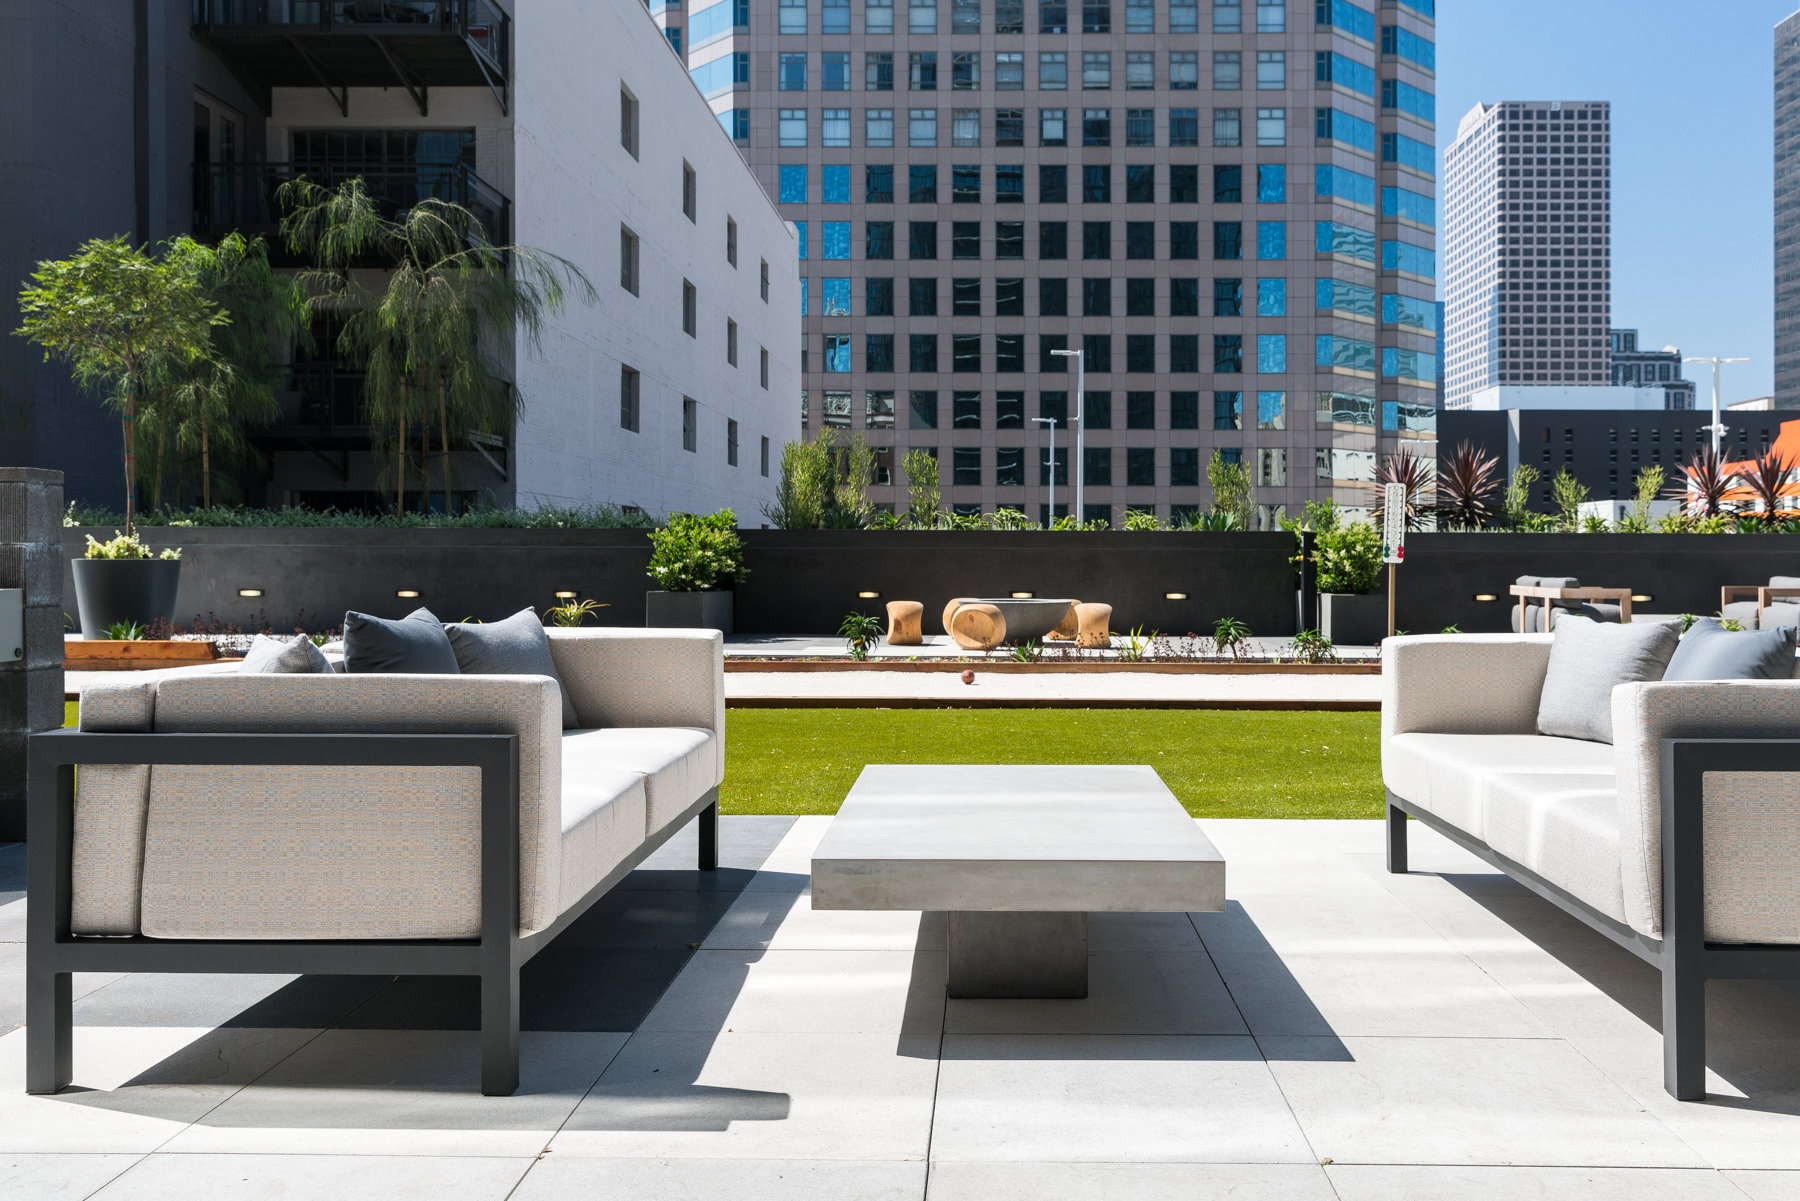 Exterior of rooftop seating area with modern couches and grass in the background